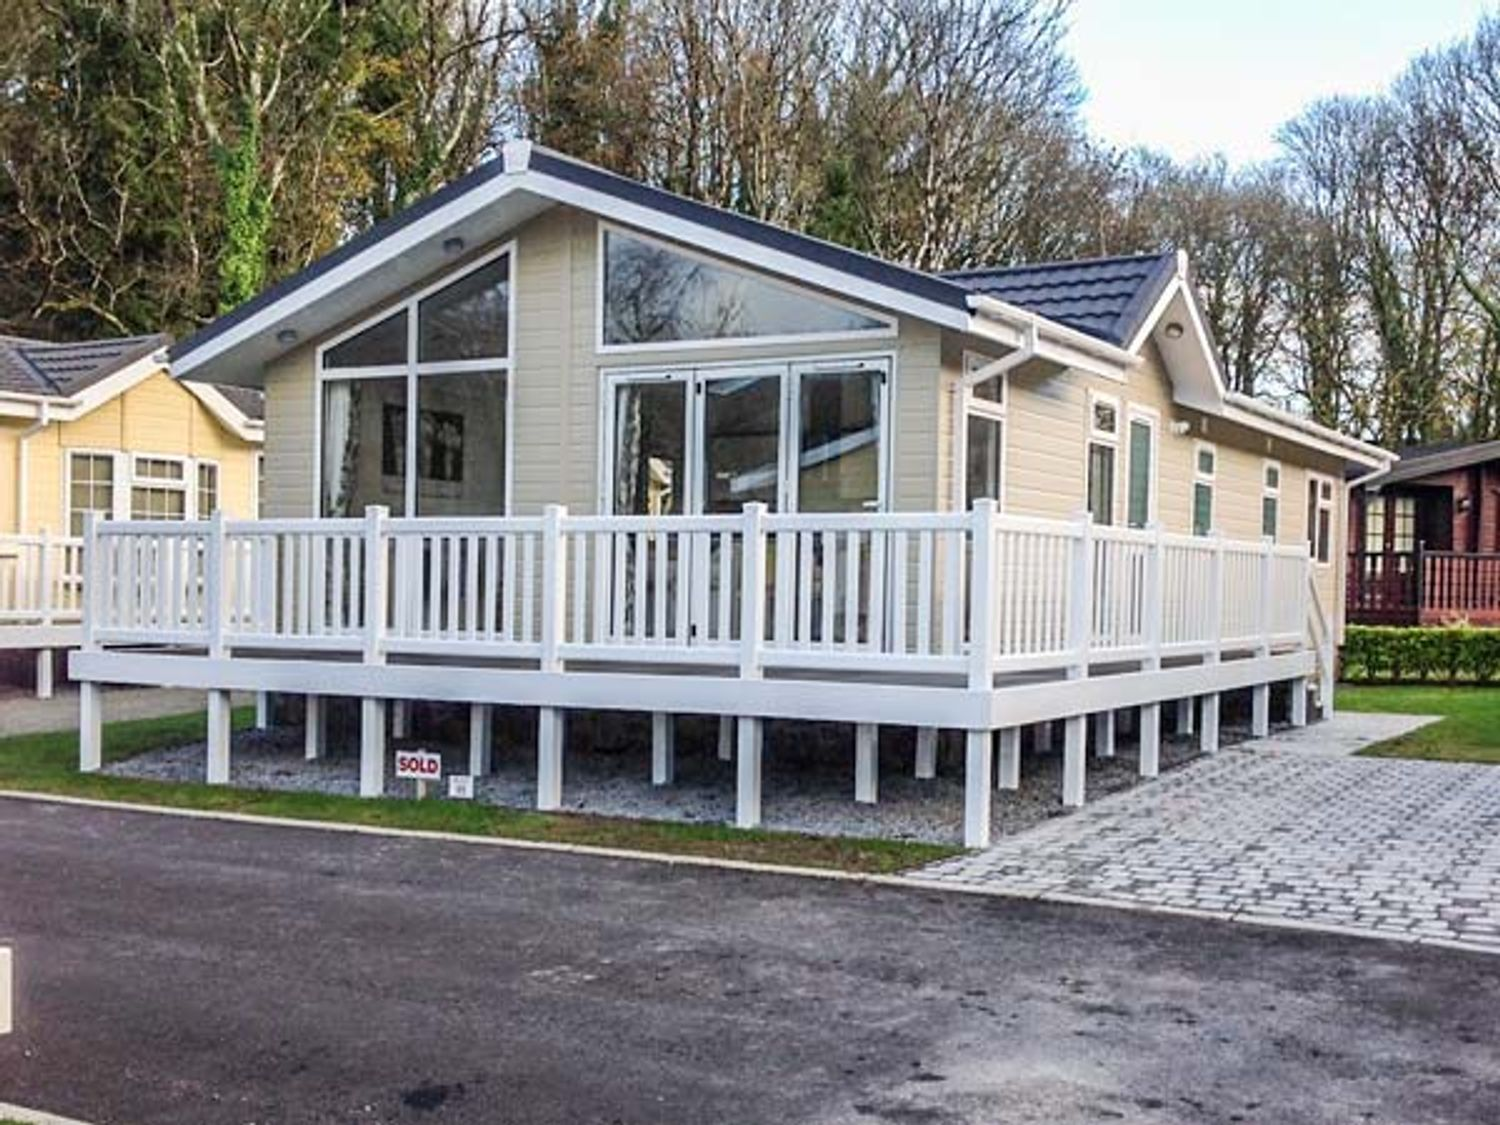 95 The Haven - South Wales - 934407 - photo 1